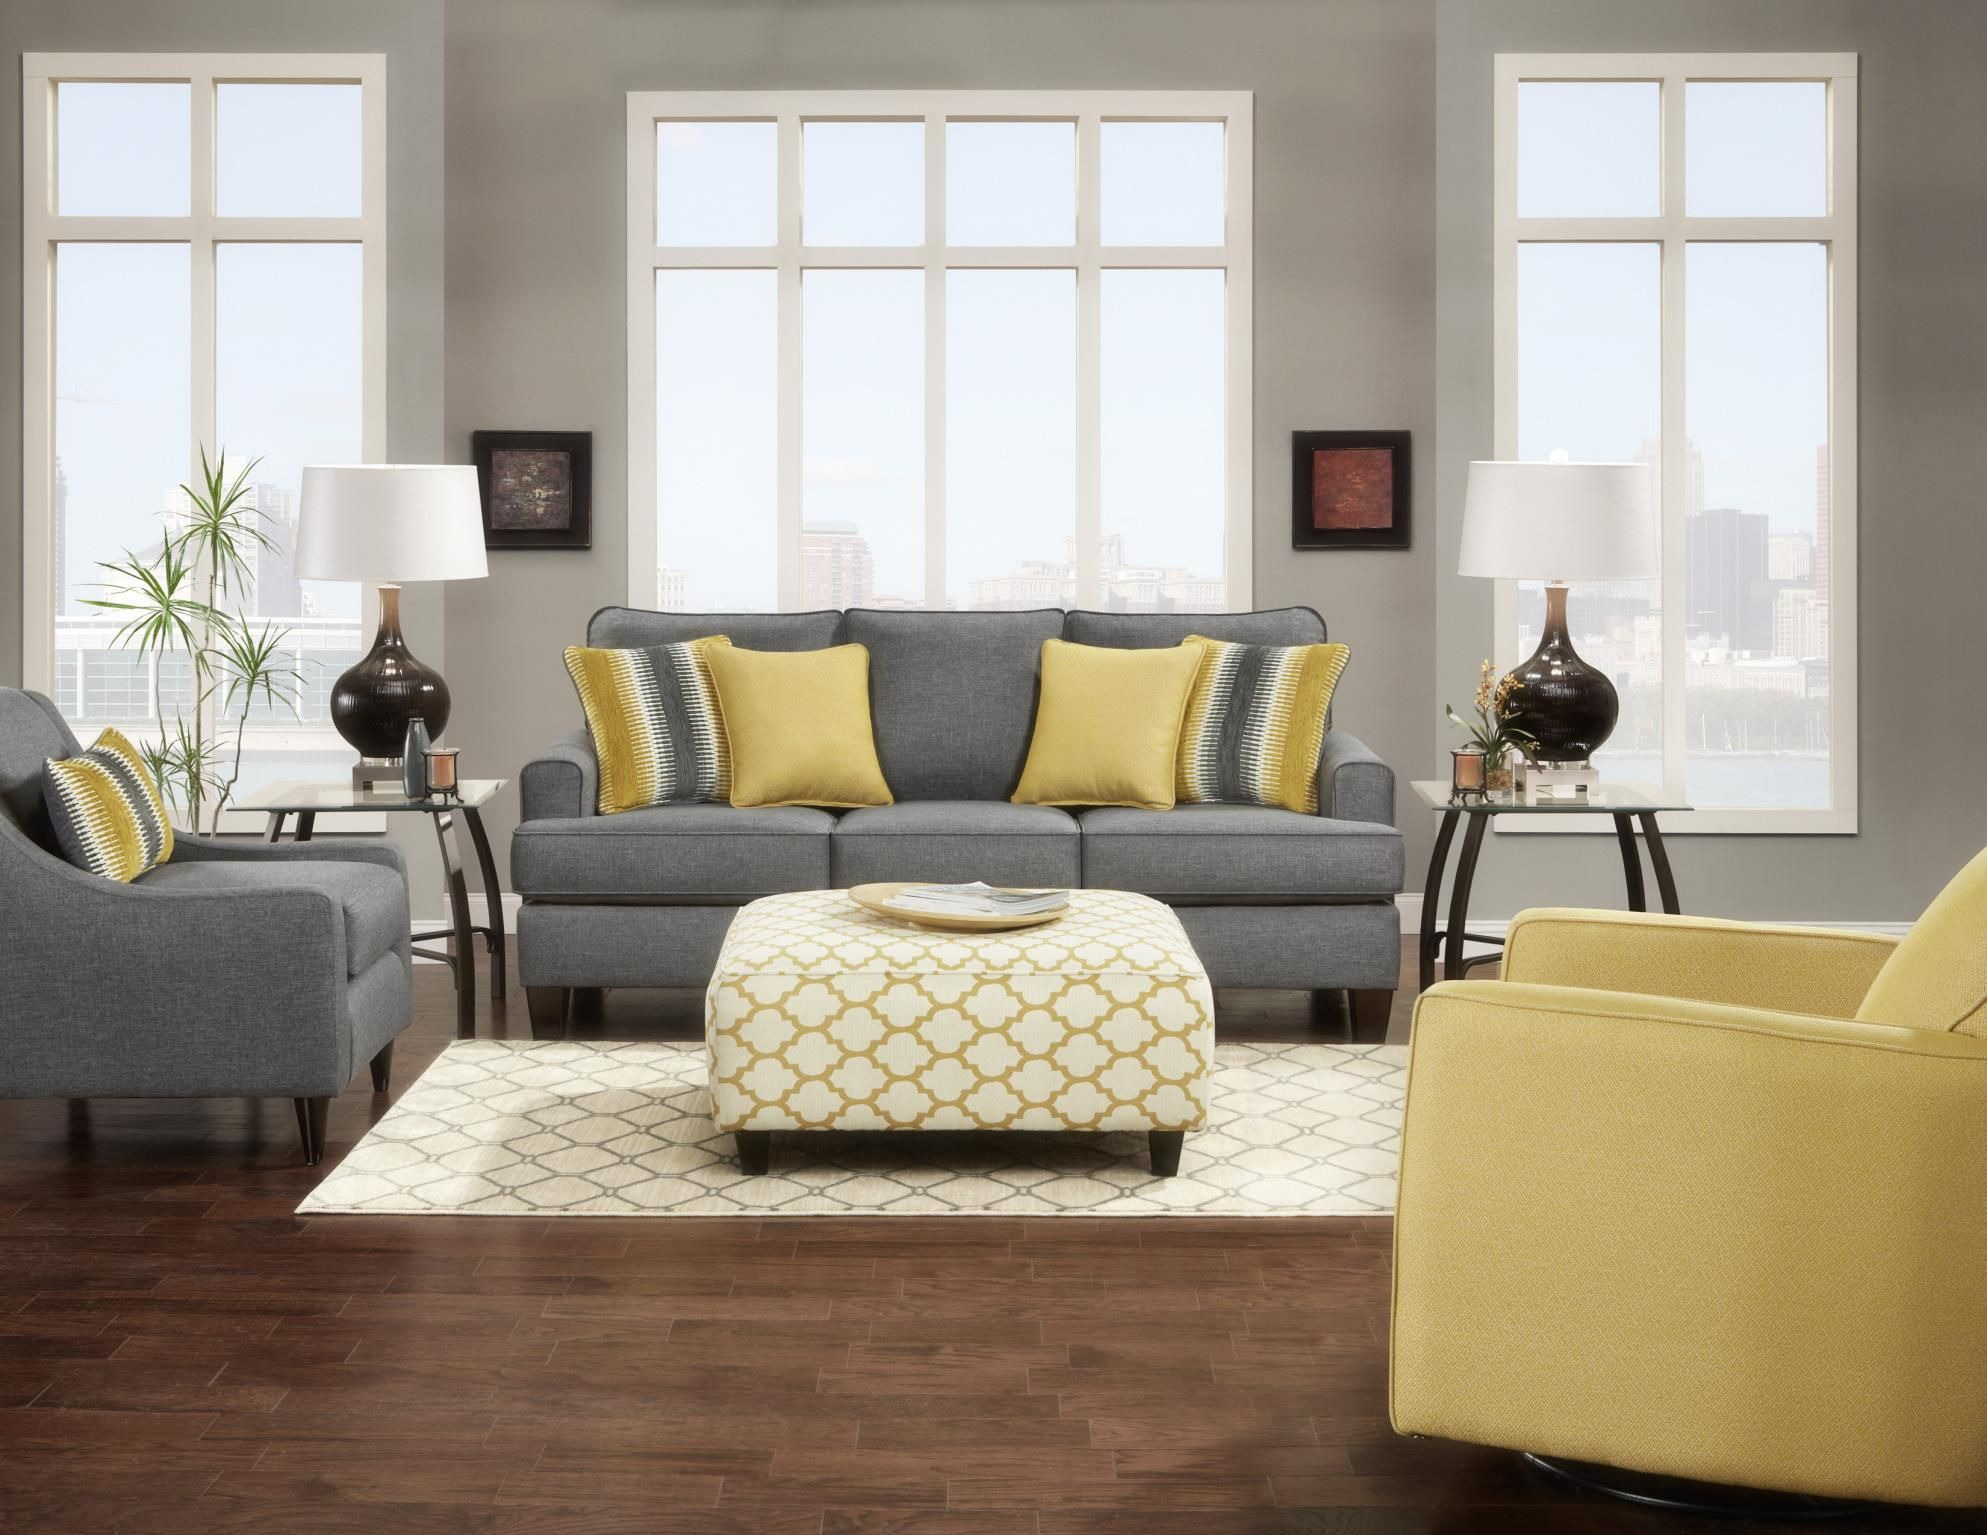 Wondrous Maxwell Grey Sofa And Love Seat Matching Accent Chair Caraccident5 Cool Chair Designs And Ideas Caraccident5Info